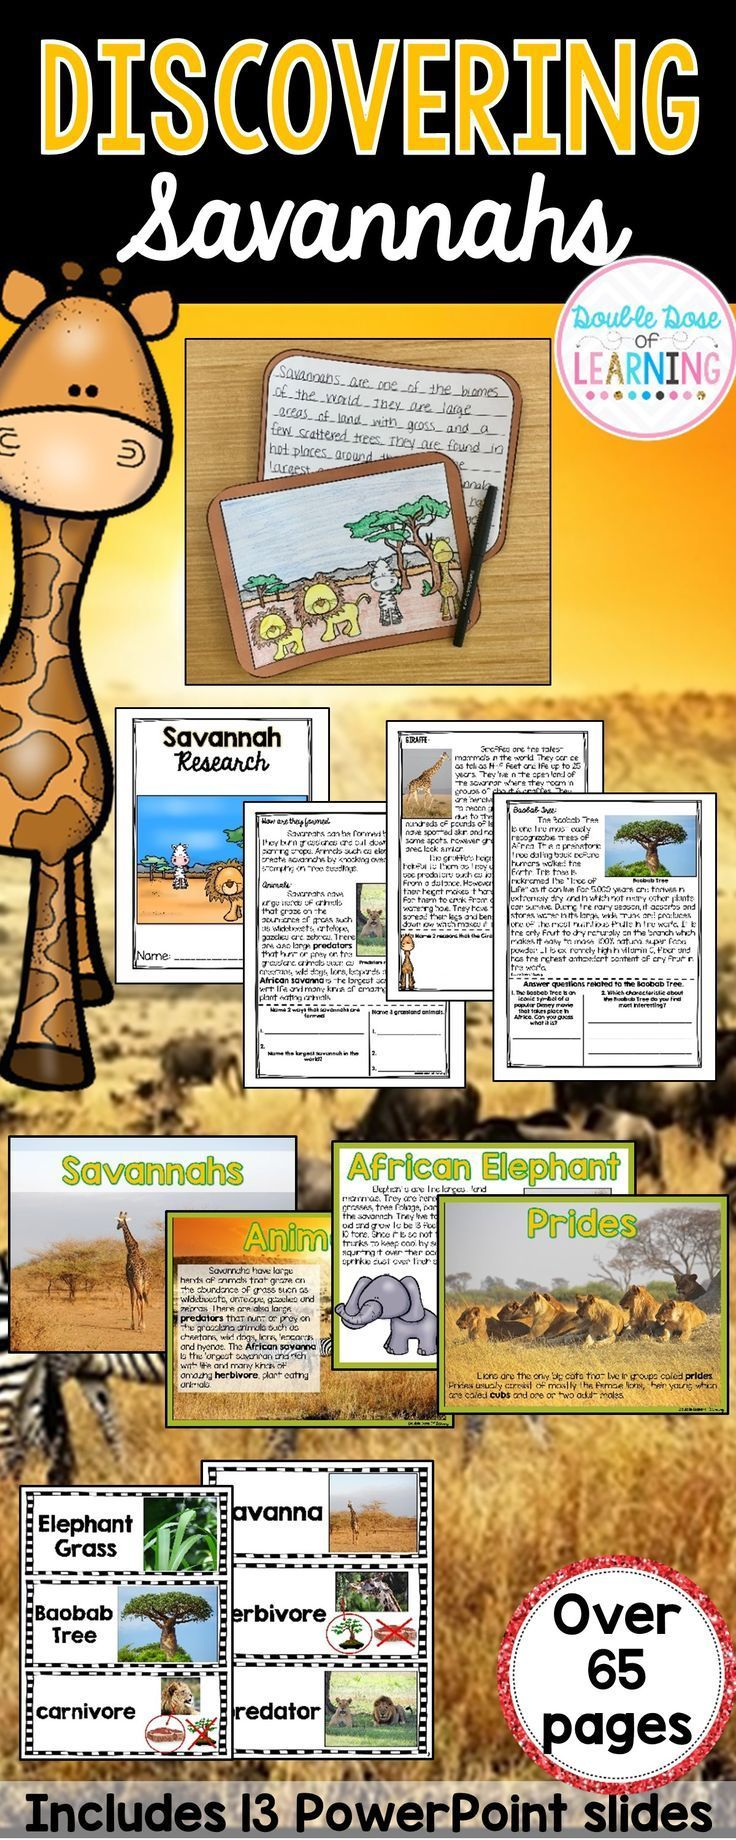 Easily and thoroughly teach the Biomes with this Savannah Research Unit with ready to go materials and PowerPoint! This unit is interactive and utilizes multimodal strategies to increase student engagement and outcomes. The Savanna unit is a comprehensive week long unit that integrates technology, vocabulary, writing, art, reading strategies and more! Students will respond to informational text by answering questions in a student booklet in a variety of formats. Students will learn…